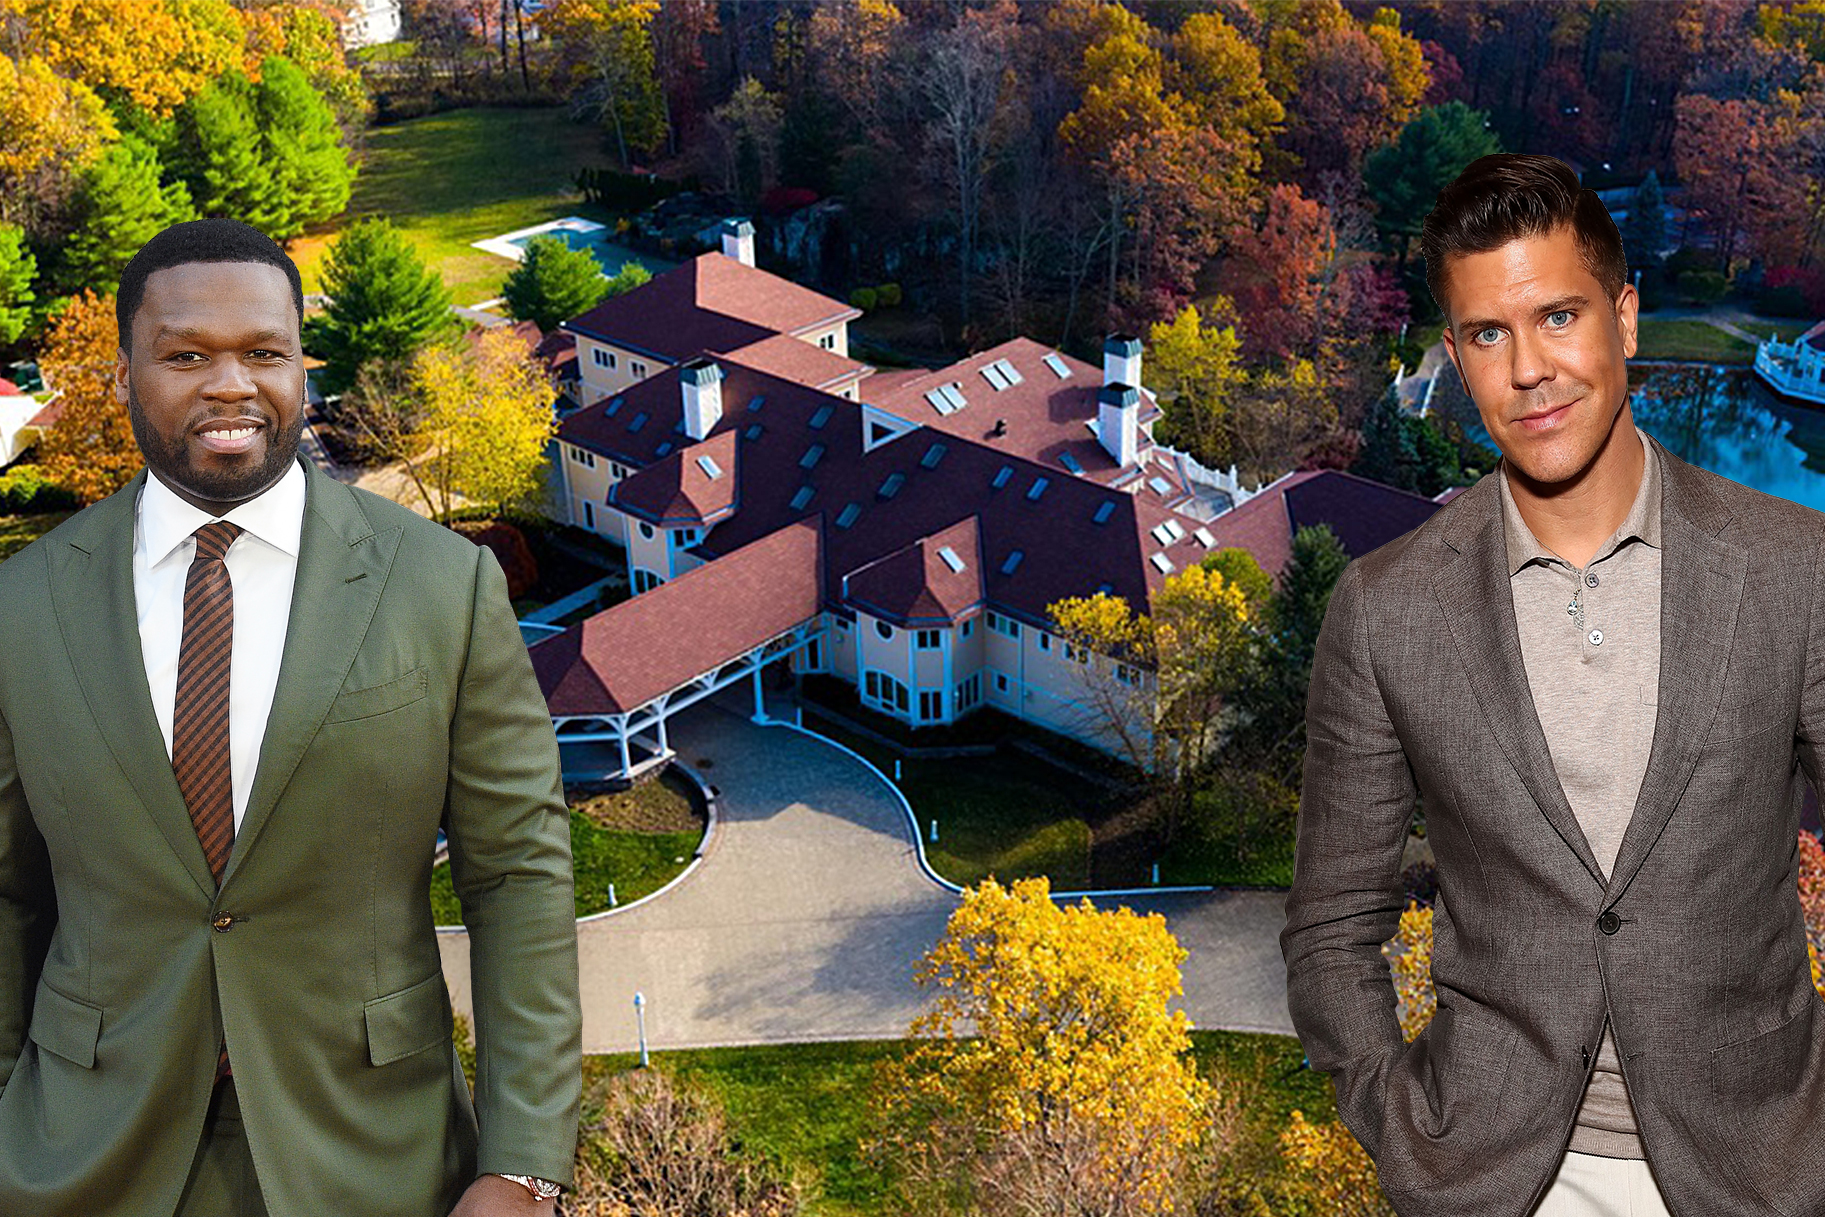 50 Cent and Fredrik Eklund